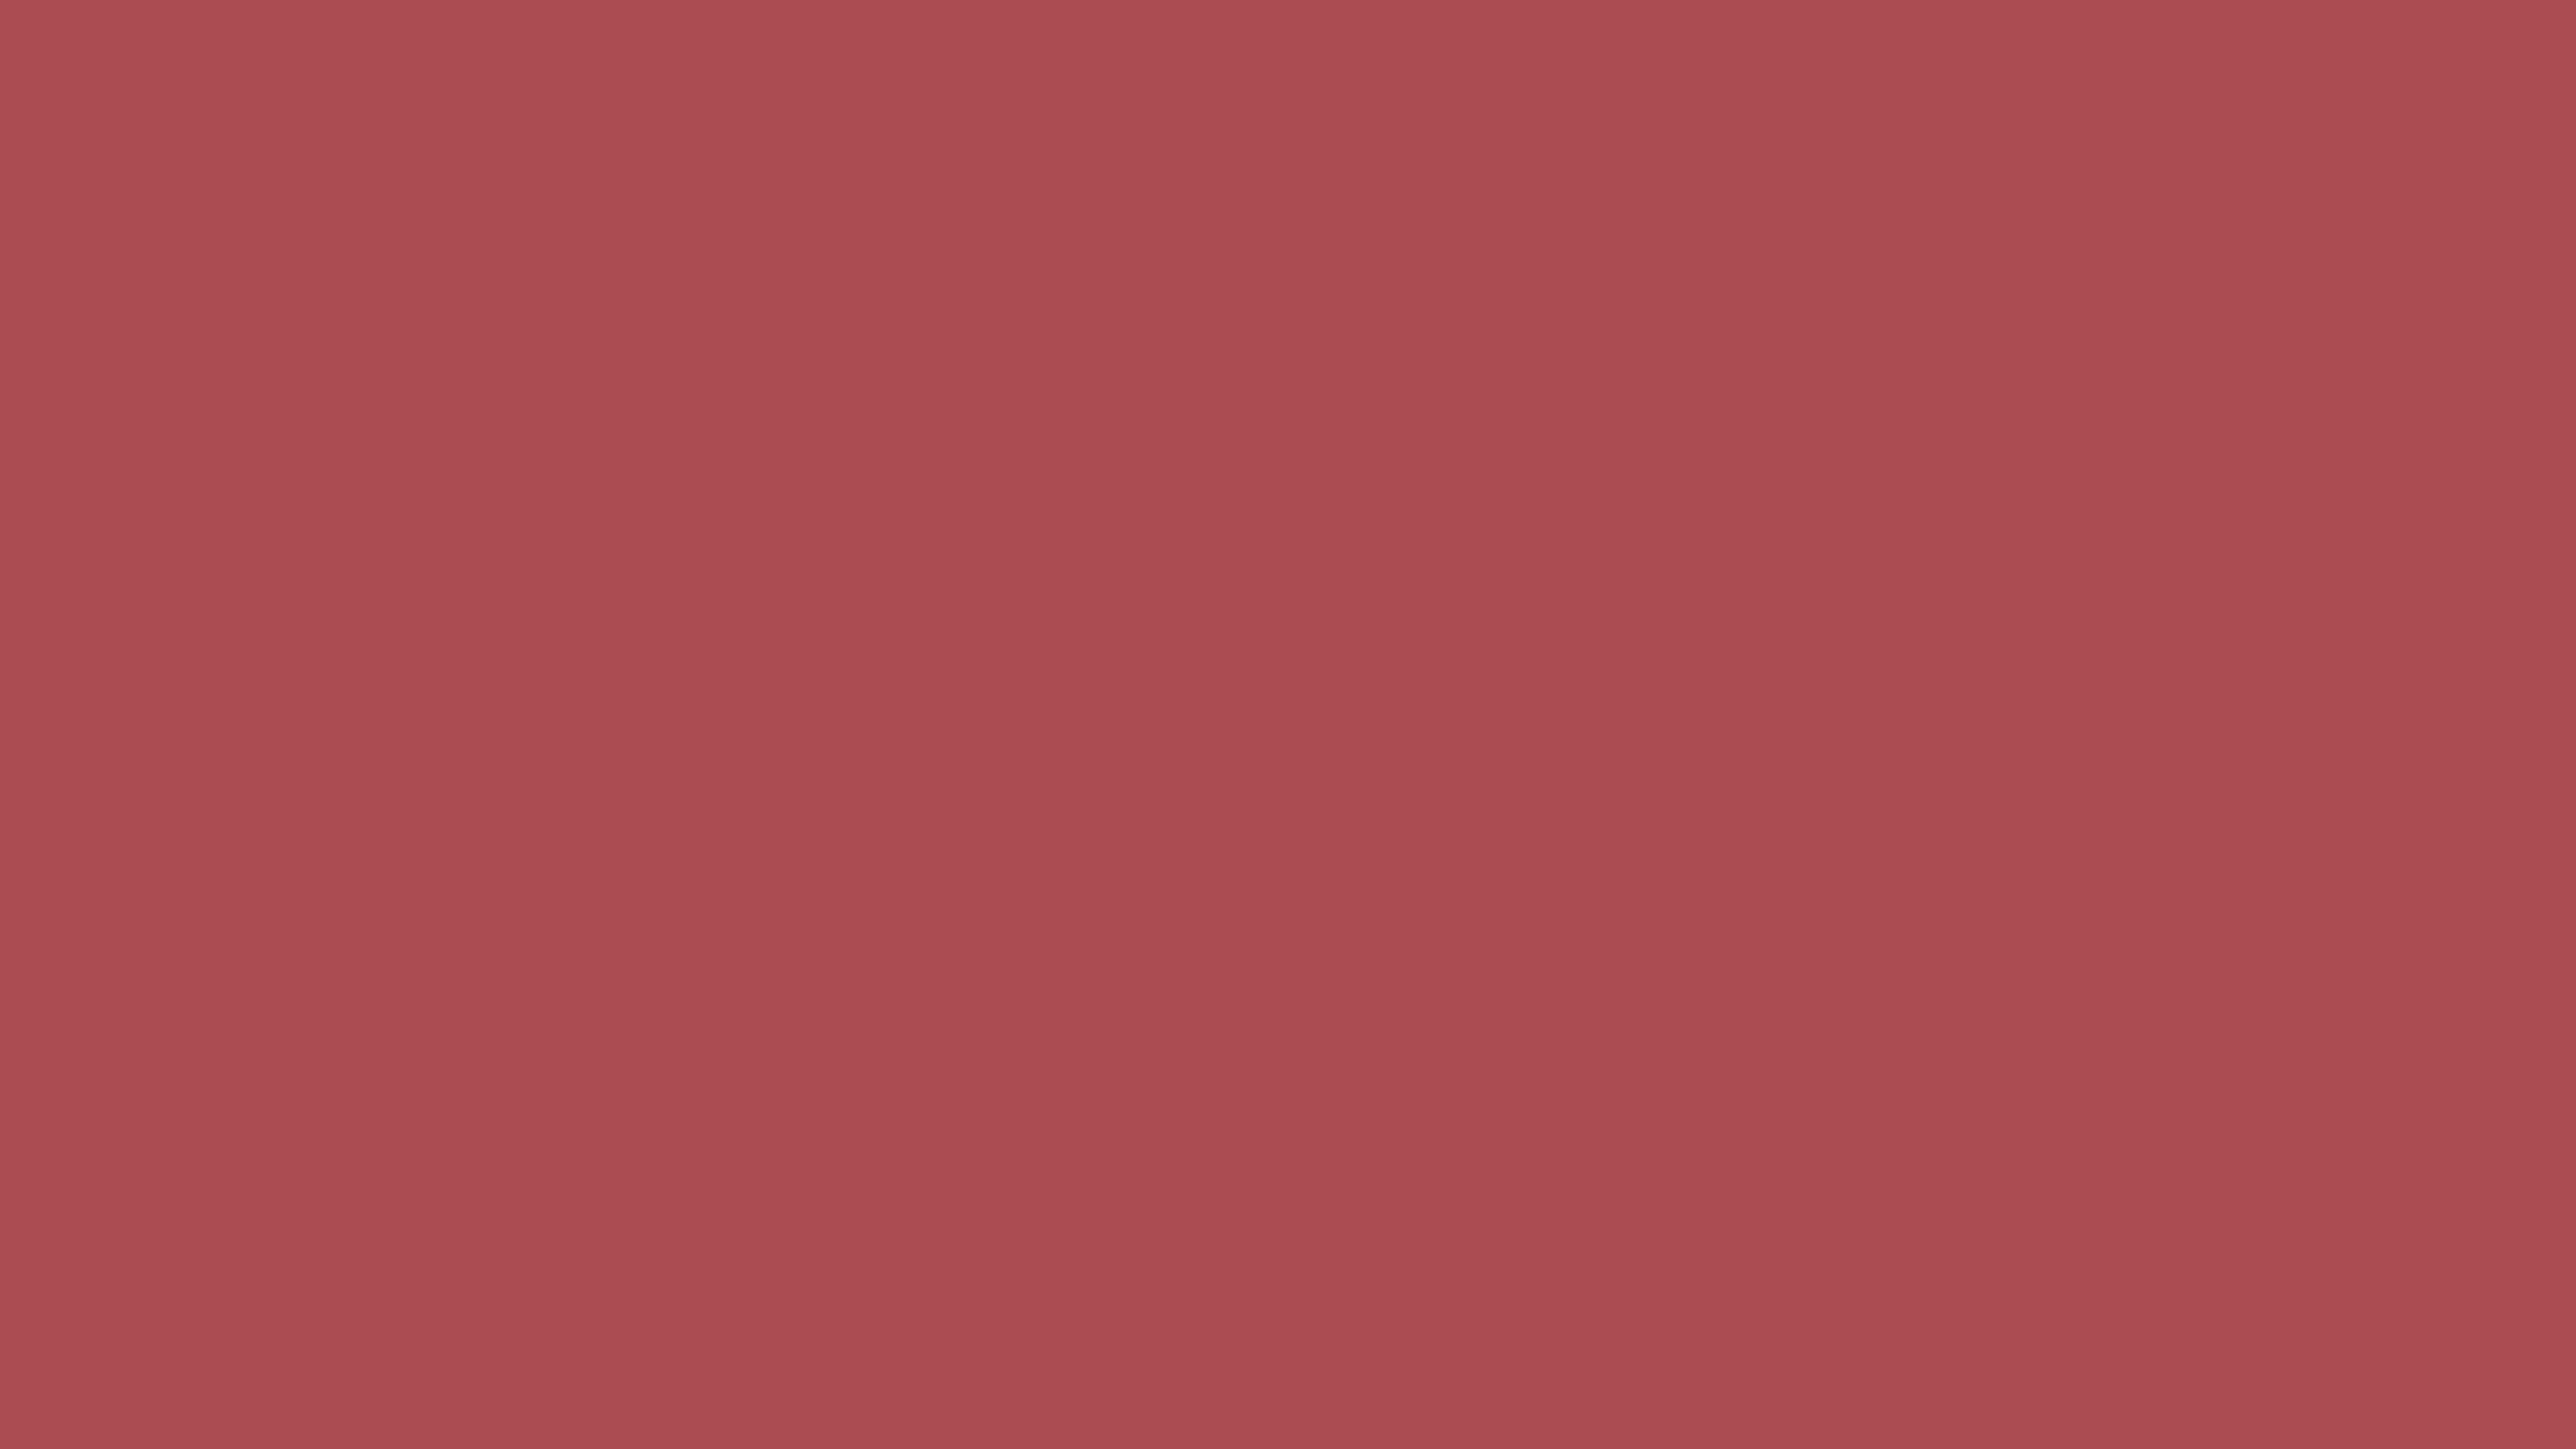 4096x2304 English Red Solid Color Background